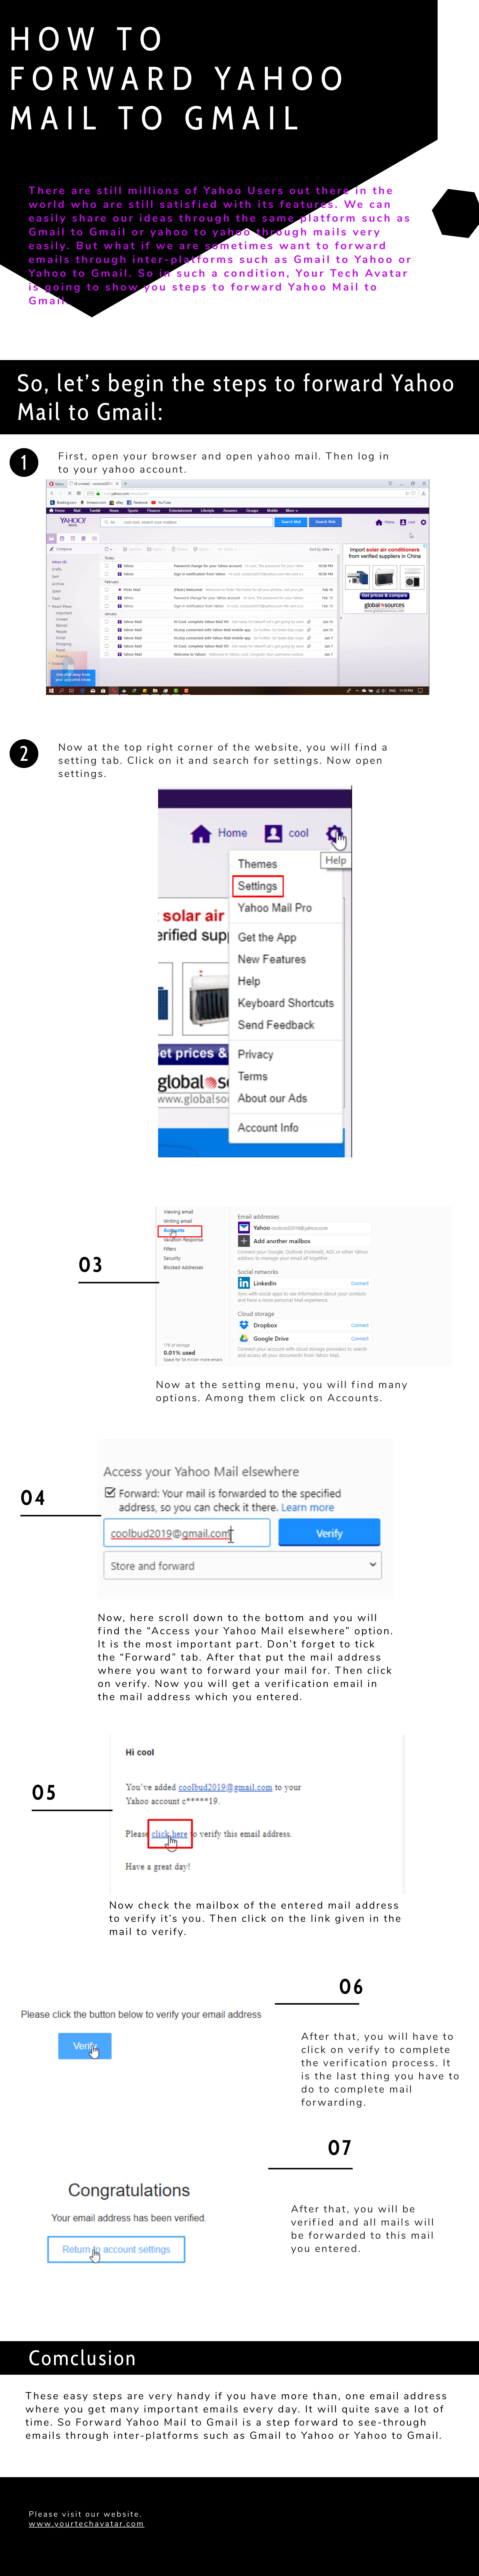 Infographic for Forward Yahoo Mail to Gmail